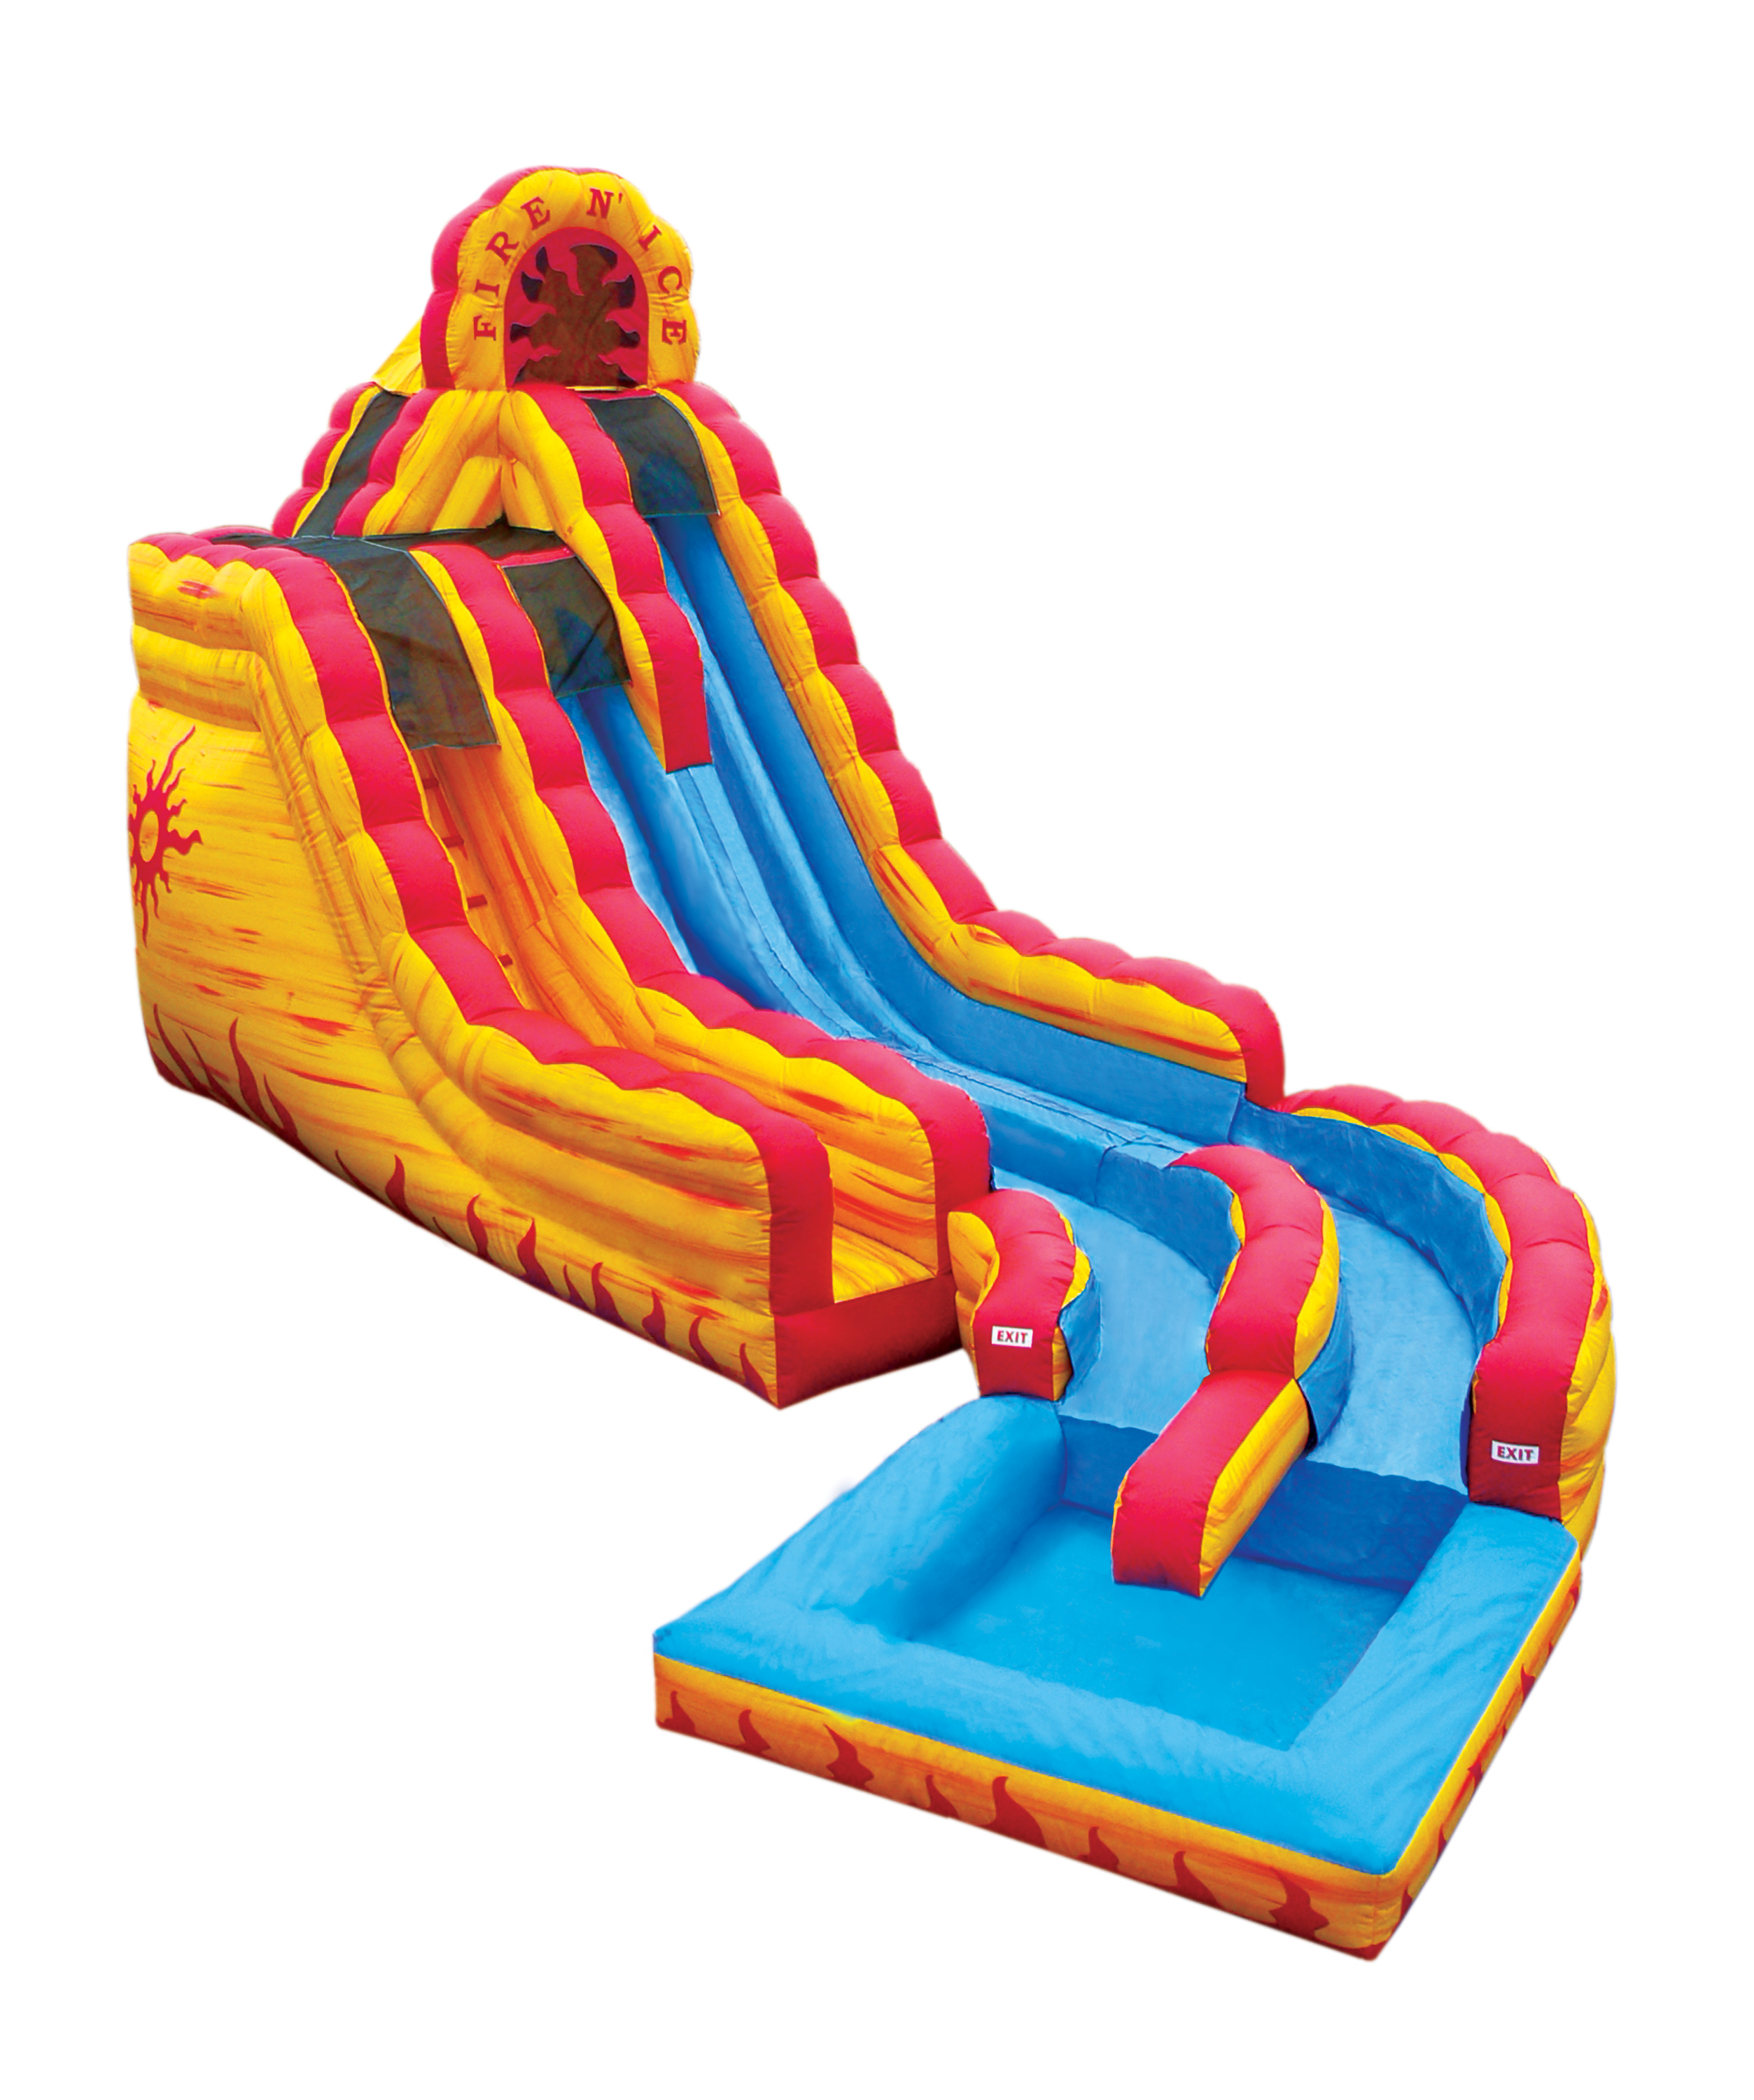 2506x3000 Inflatable Water Slides Jumpapalooza Okc Clip Art